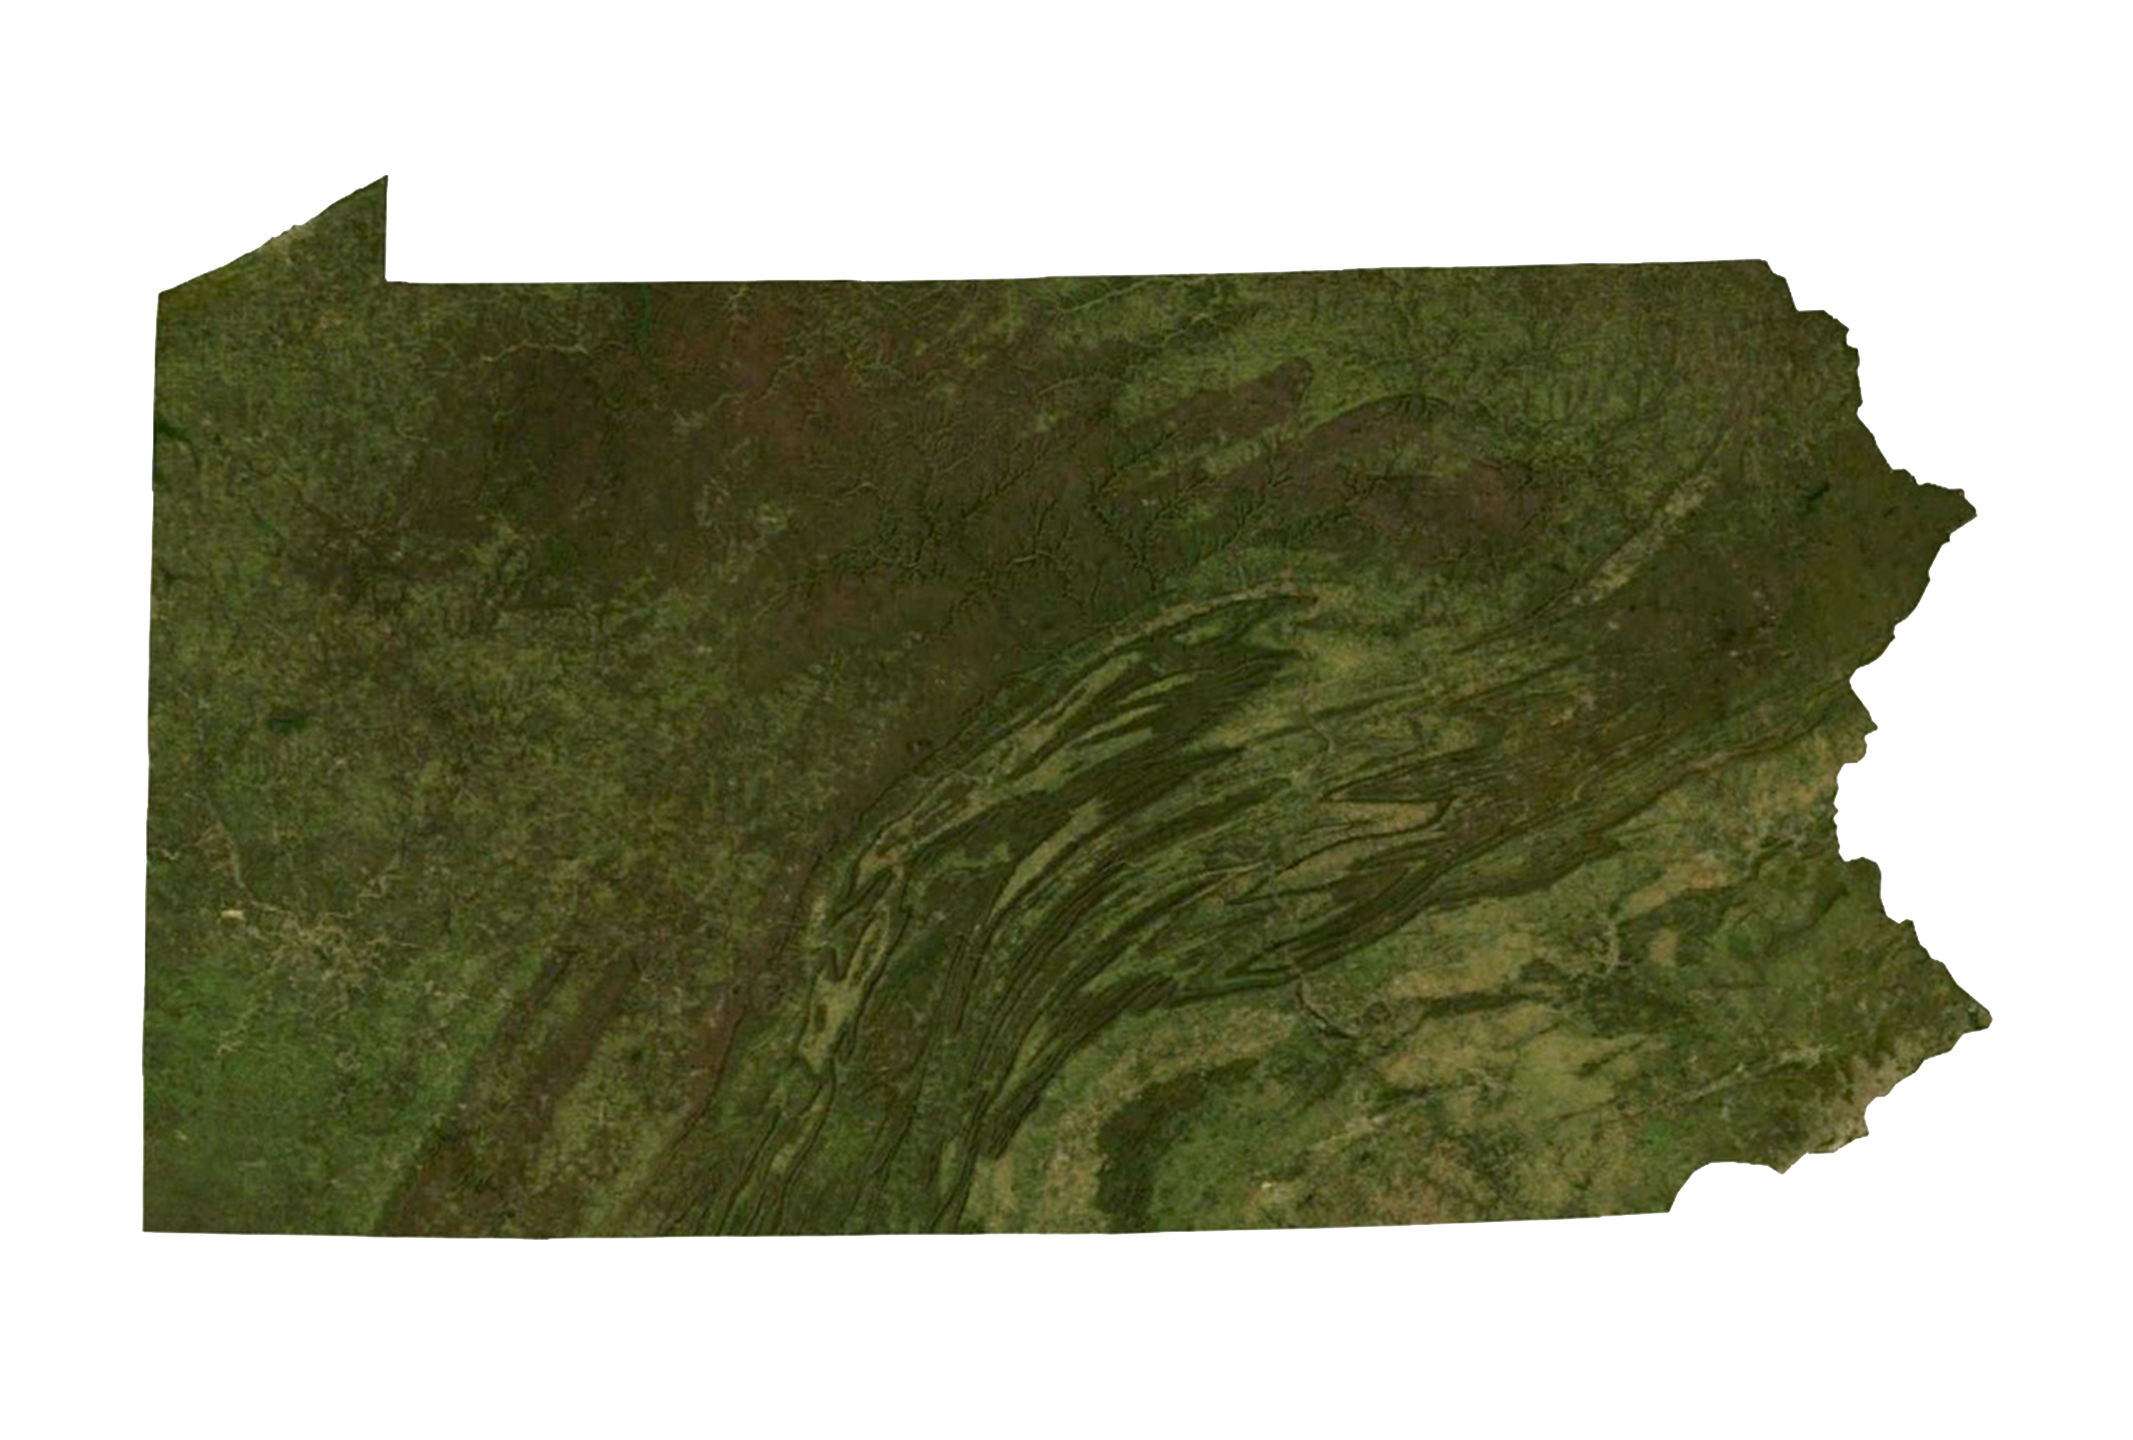 Pennsylvania Map_1554237077611.png.jpg